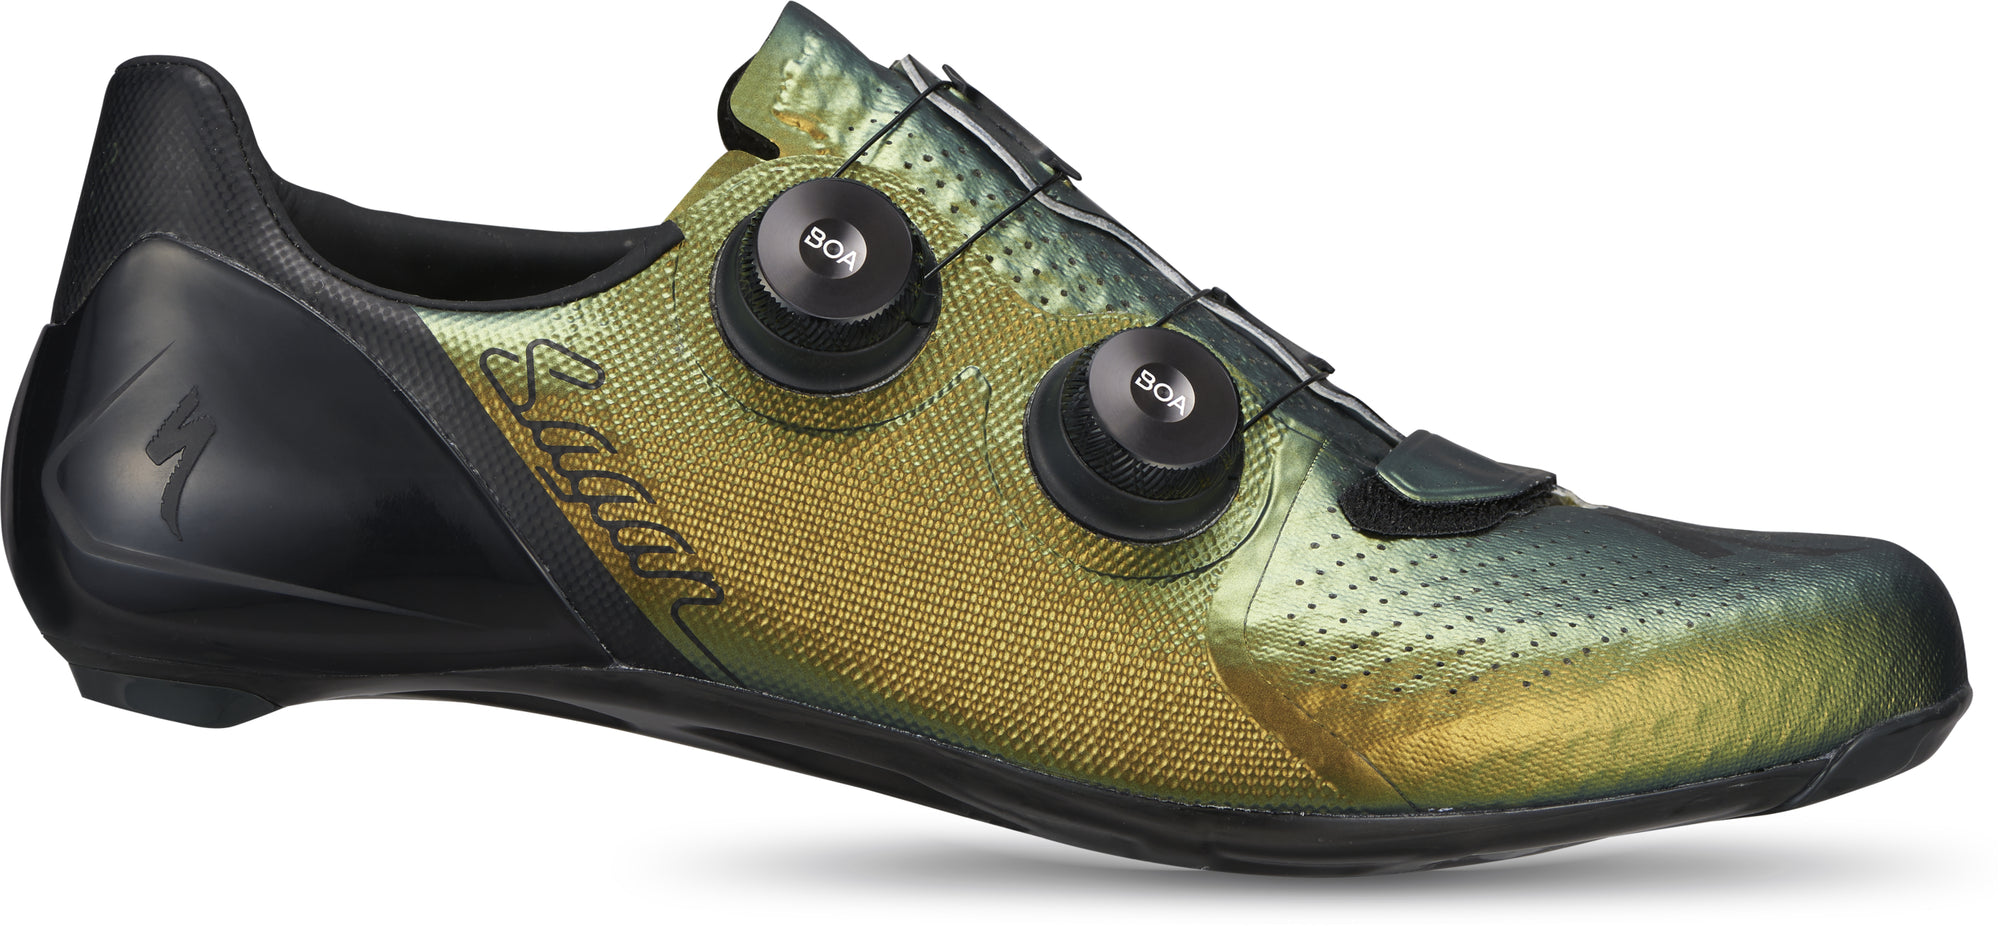 S-Works 7 Road Shoes - Sagan Collection: Deconstructivism